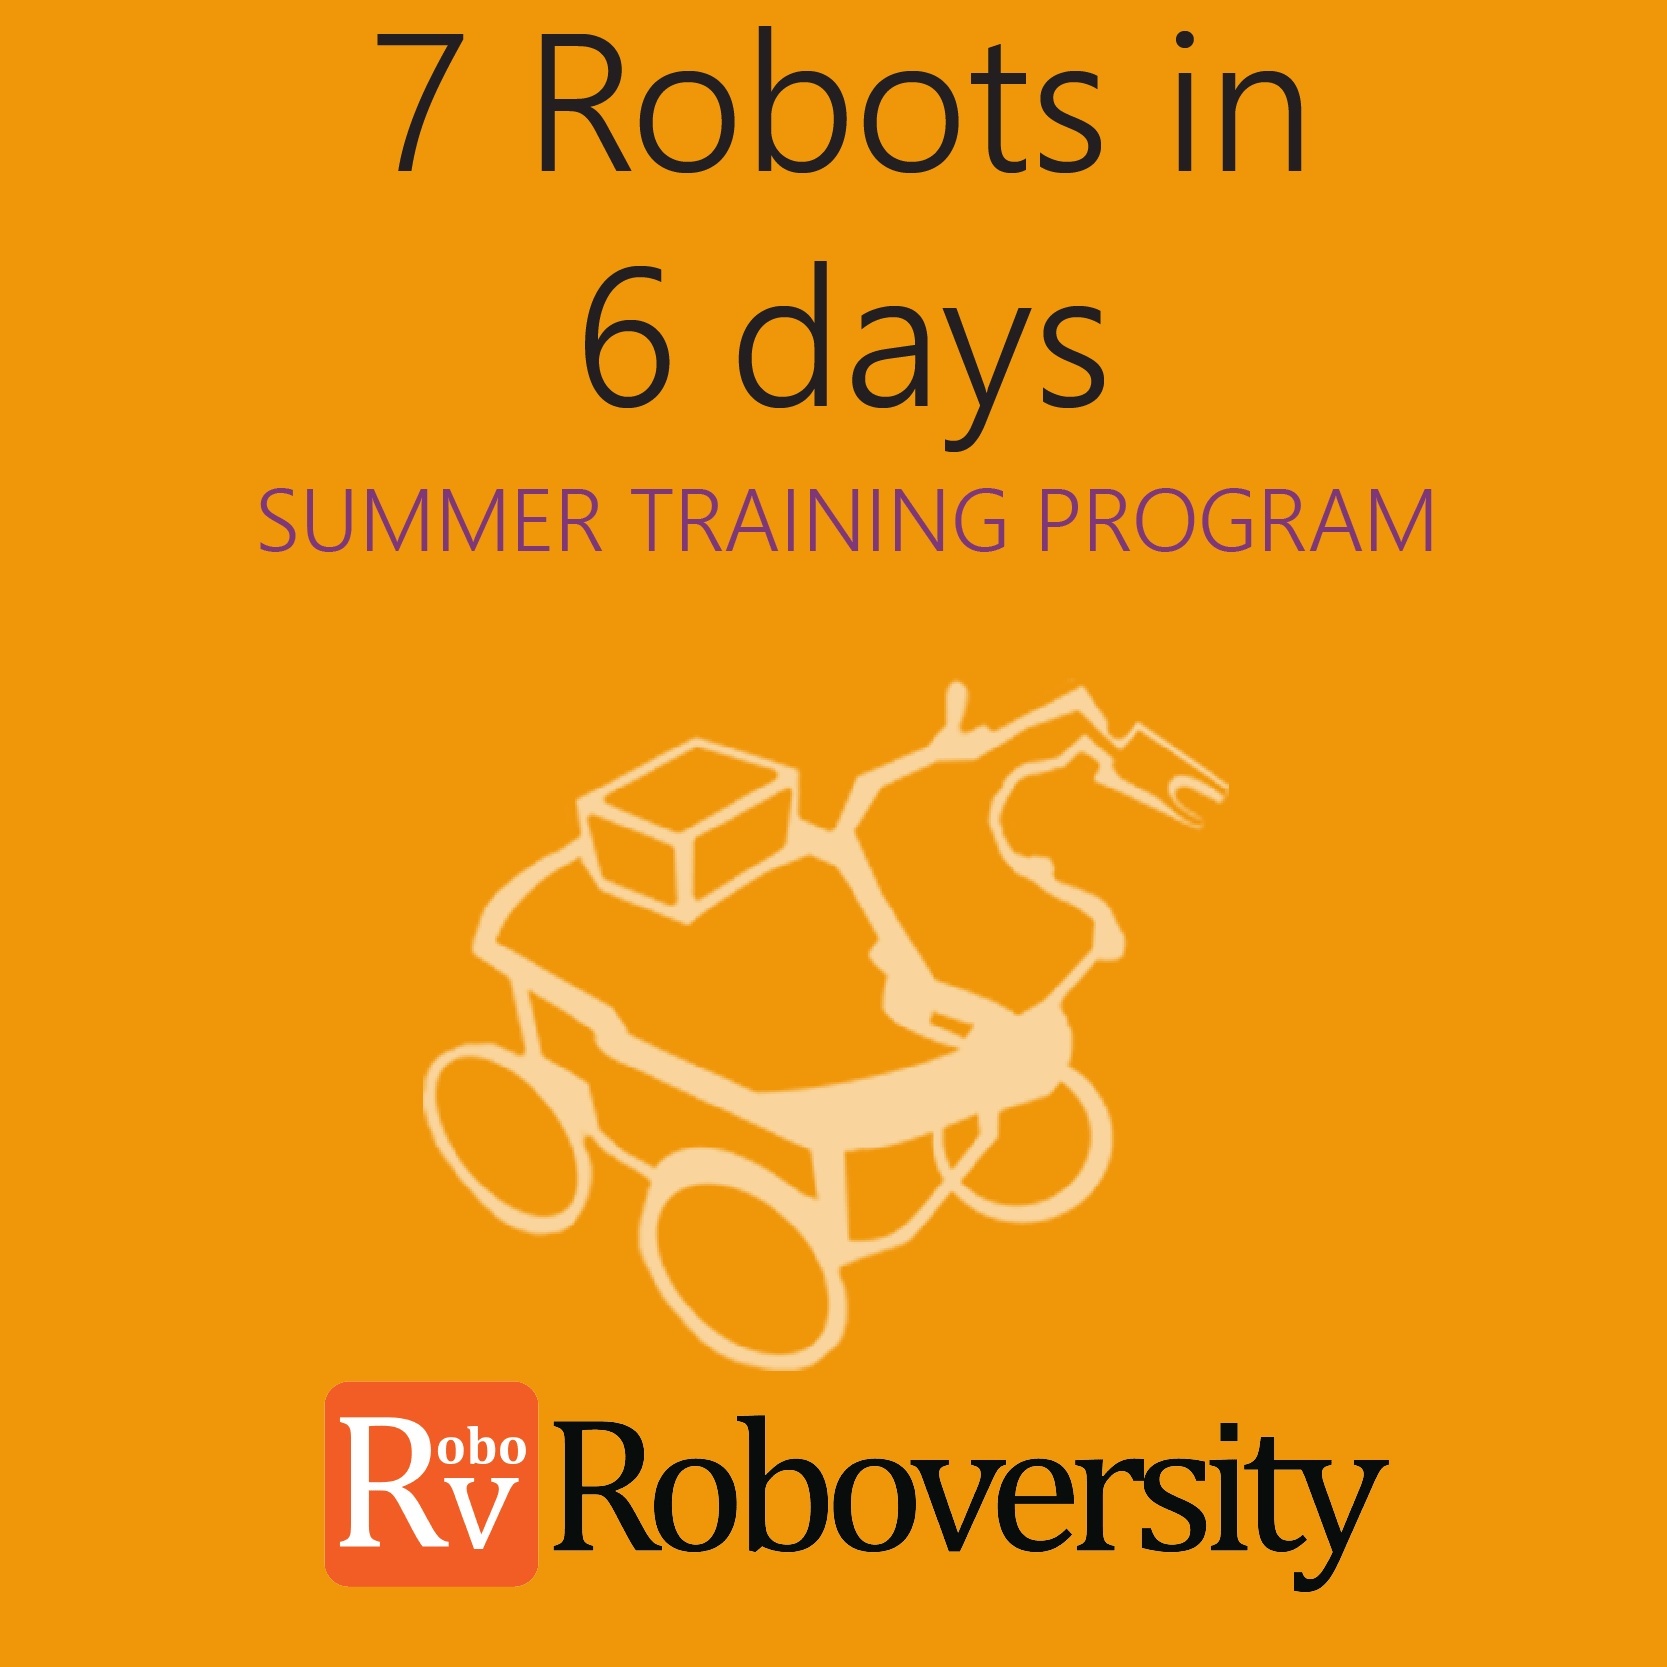 Summer Training Program on 7 Robots in 6 Days  at Skyfi Labs Center, Nesto Institute of Finance, T-Nagar Workshop